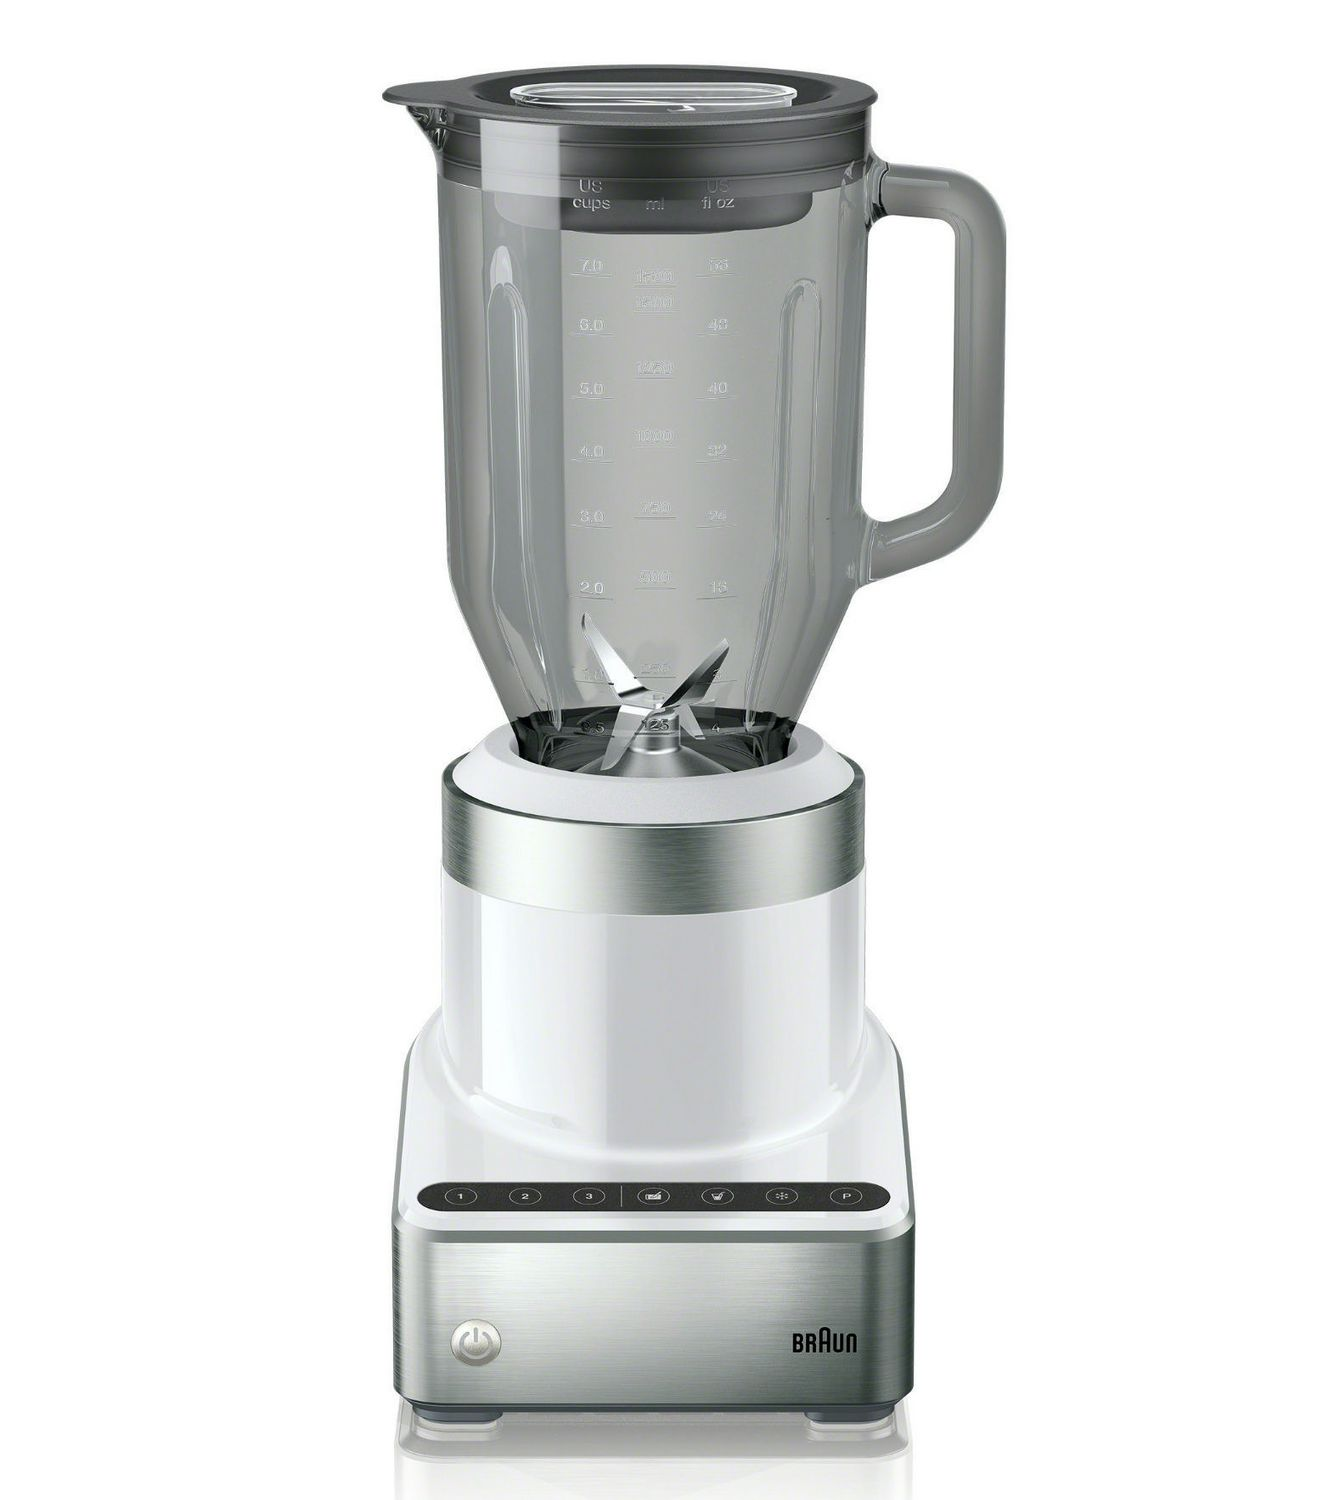 Best gifts for mom - Braun Puremix Power Countertop Blender 1000 W Stainless Steel - For the mom who loves her daily smoothie